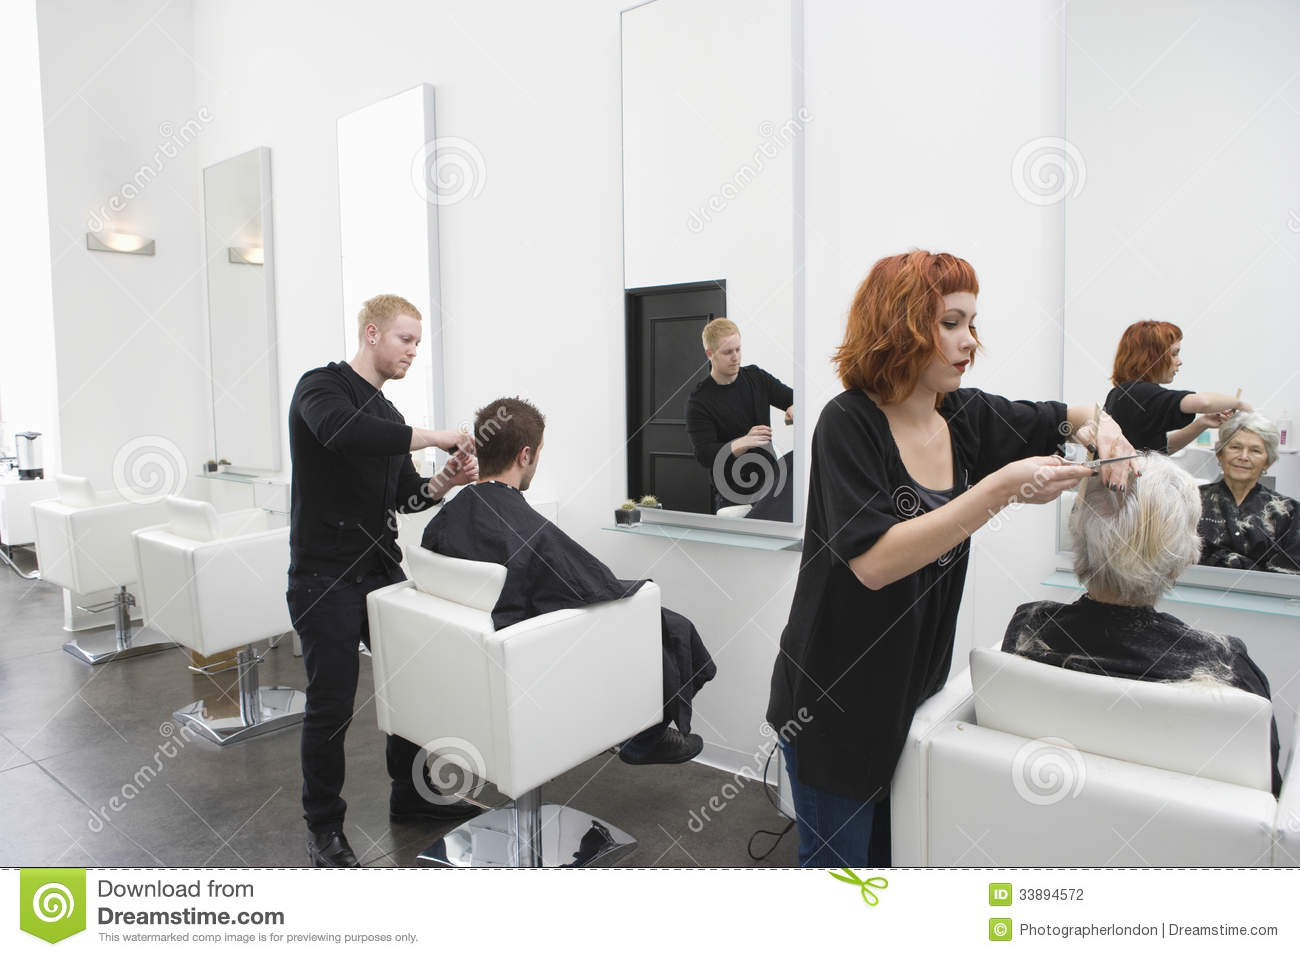 Salon De Depilacion Hairdressers Giving Haircut To Customers Stock Photography